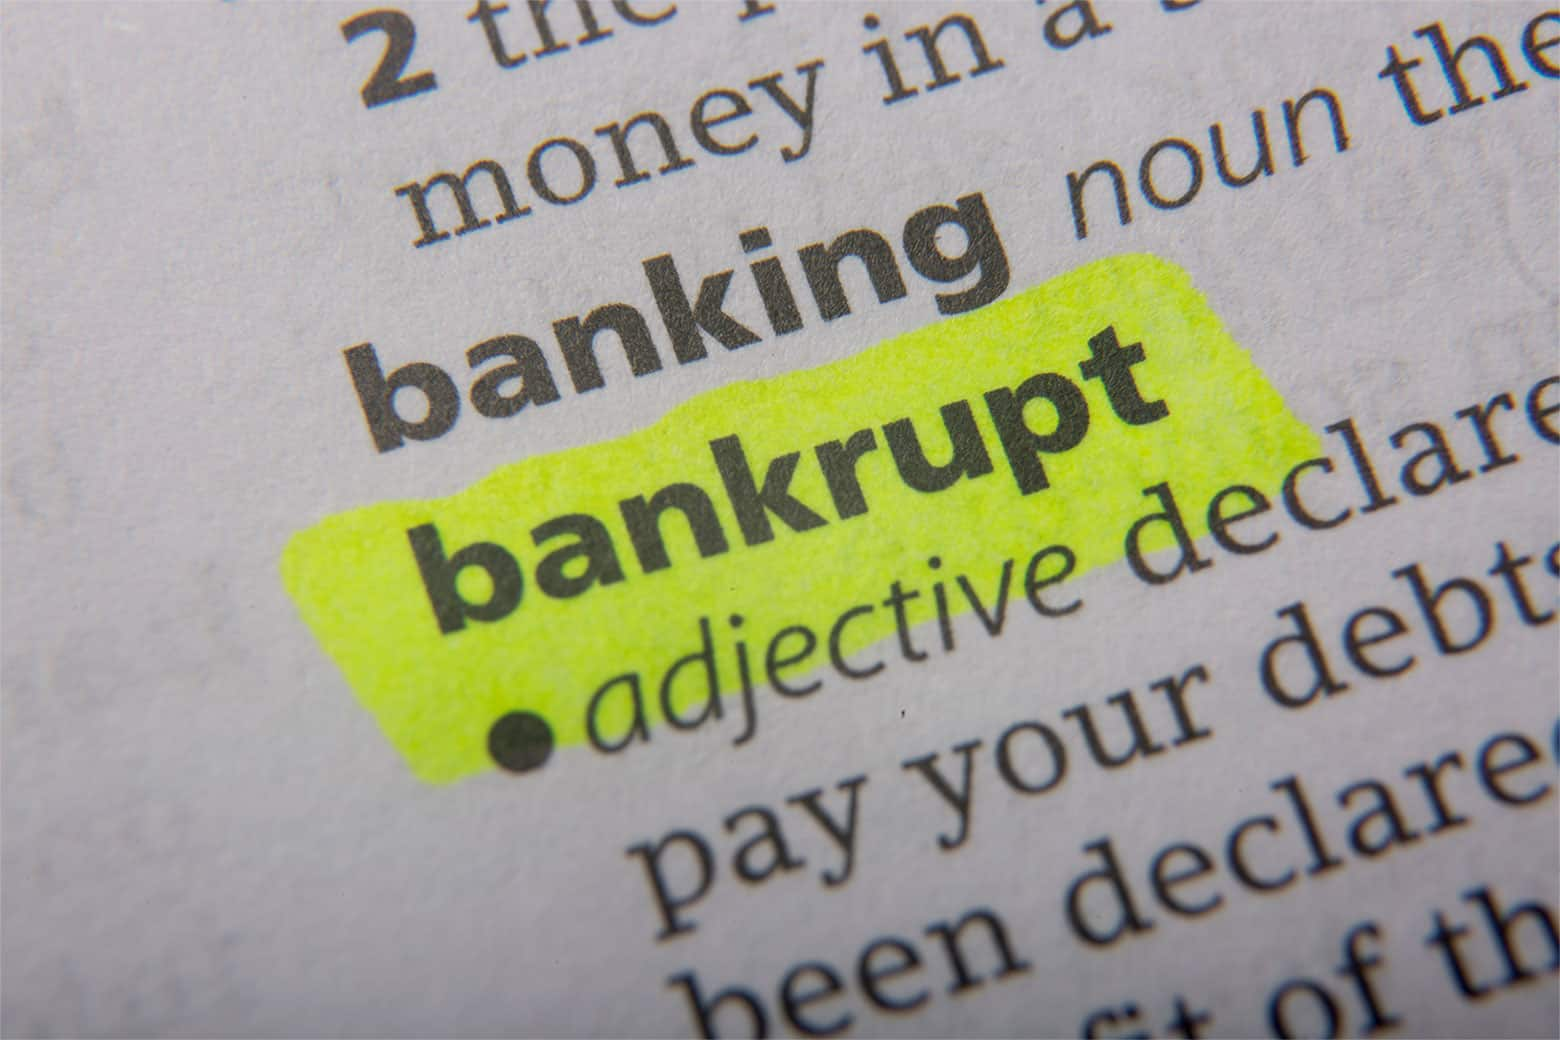 Bankrupt defined in the English dictionary